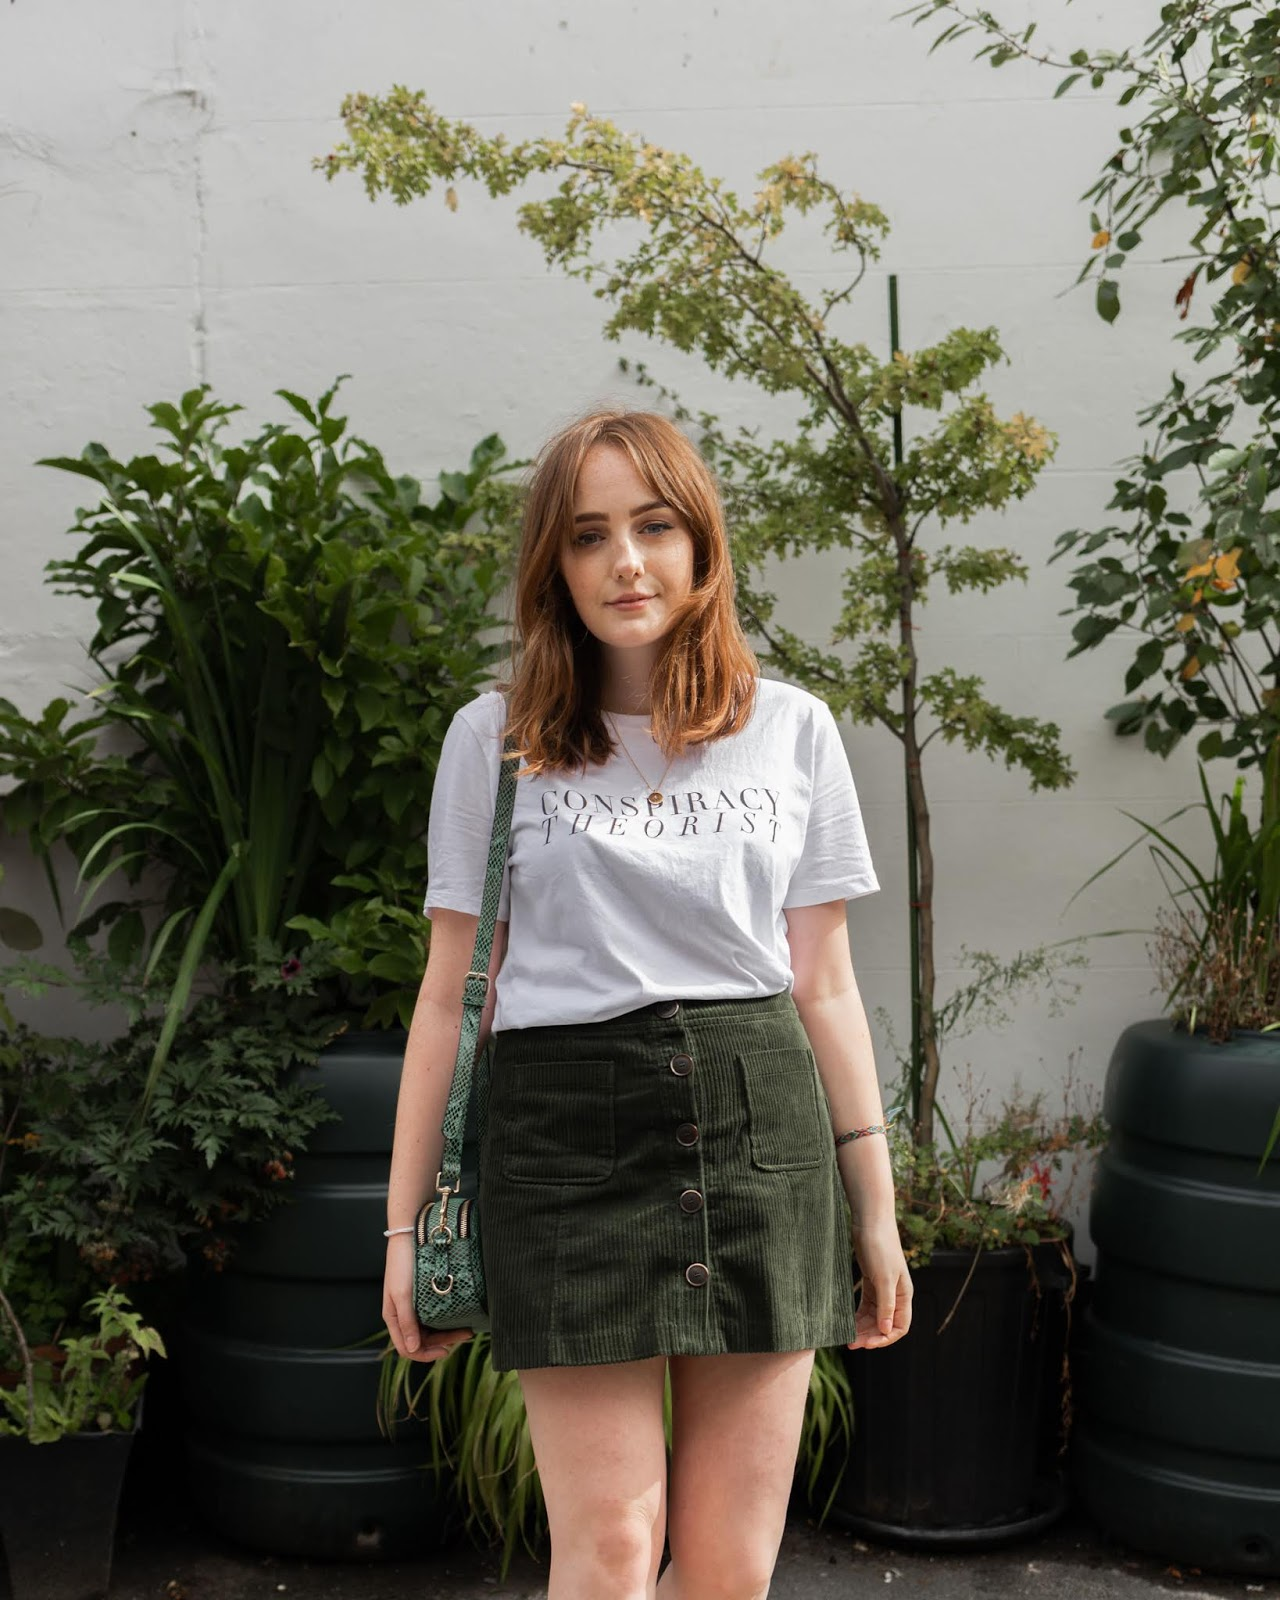 blogger wearing 'conspiracy theorist' white t-shirt and green corduroy button up mini skirt